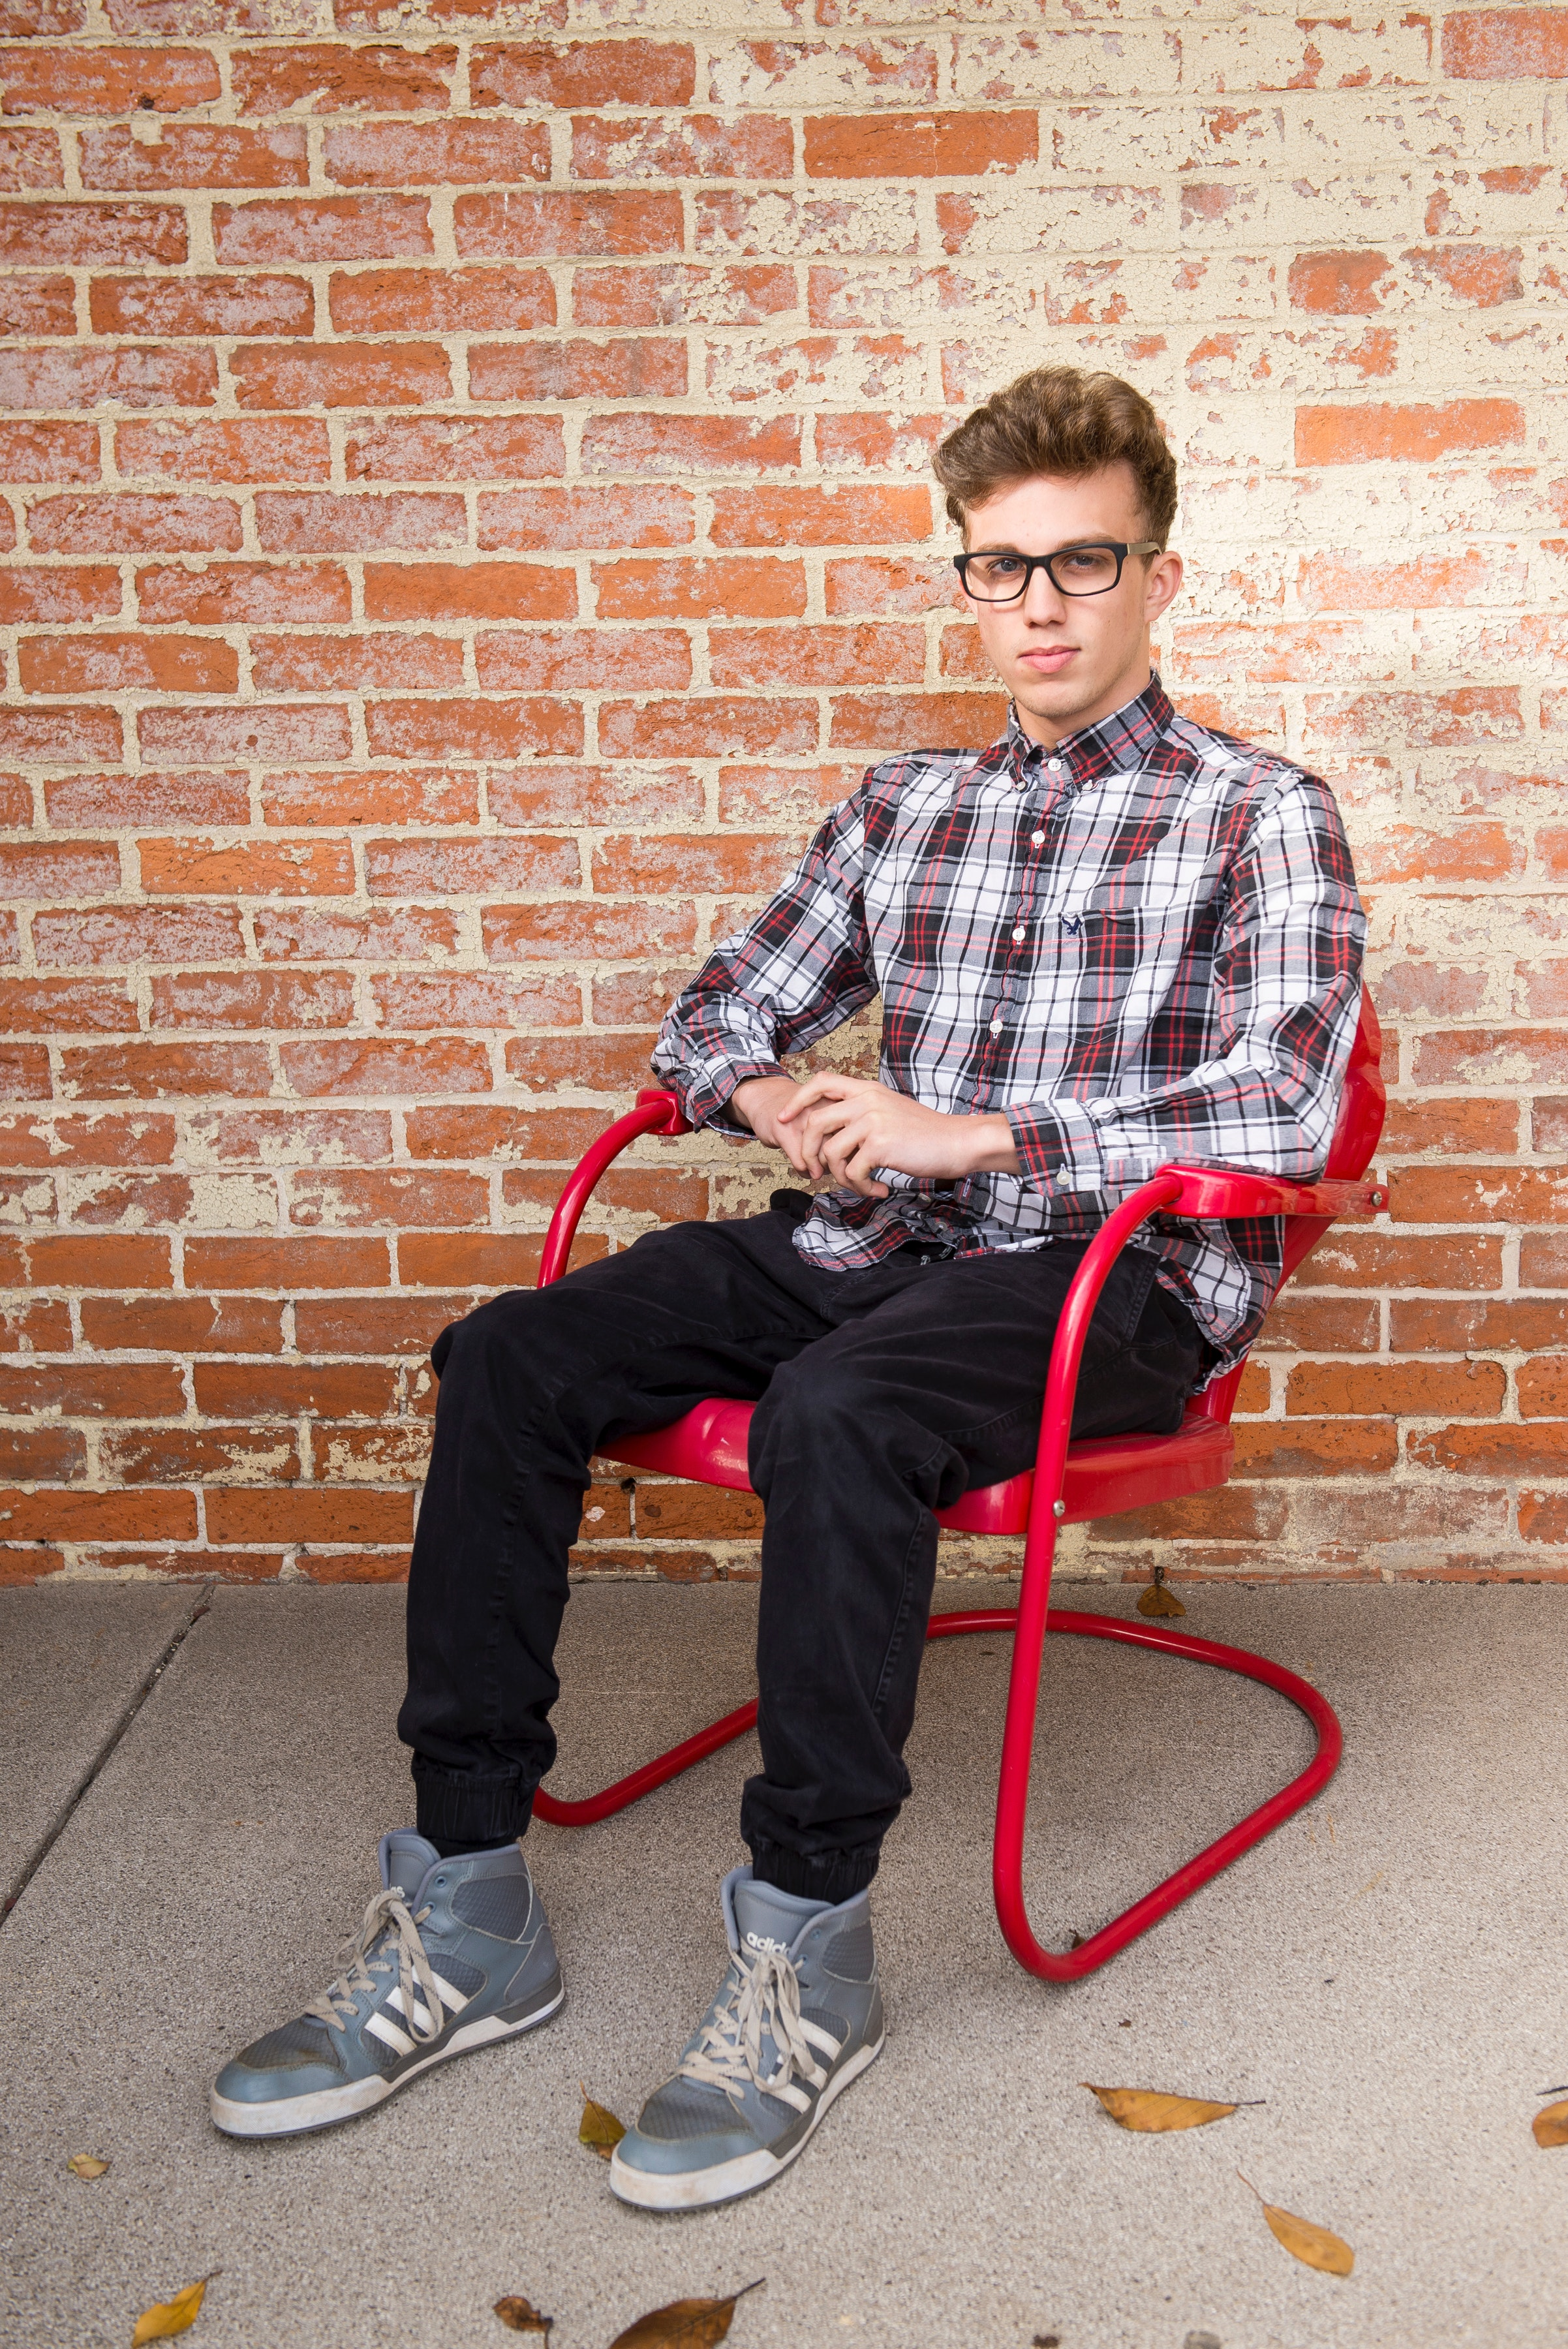 Man Wearing White And Red Long Sleeve Shirt Sitting On Red Steel Armchair, Adolescent, Boy, Brick wall, Casual, HQ Photo